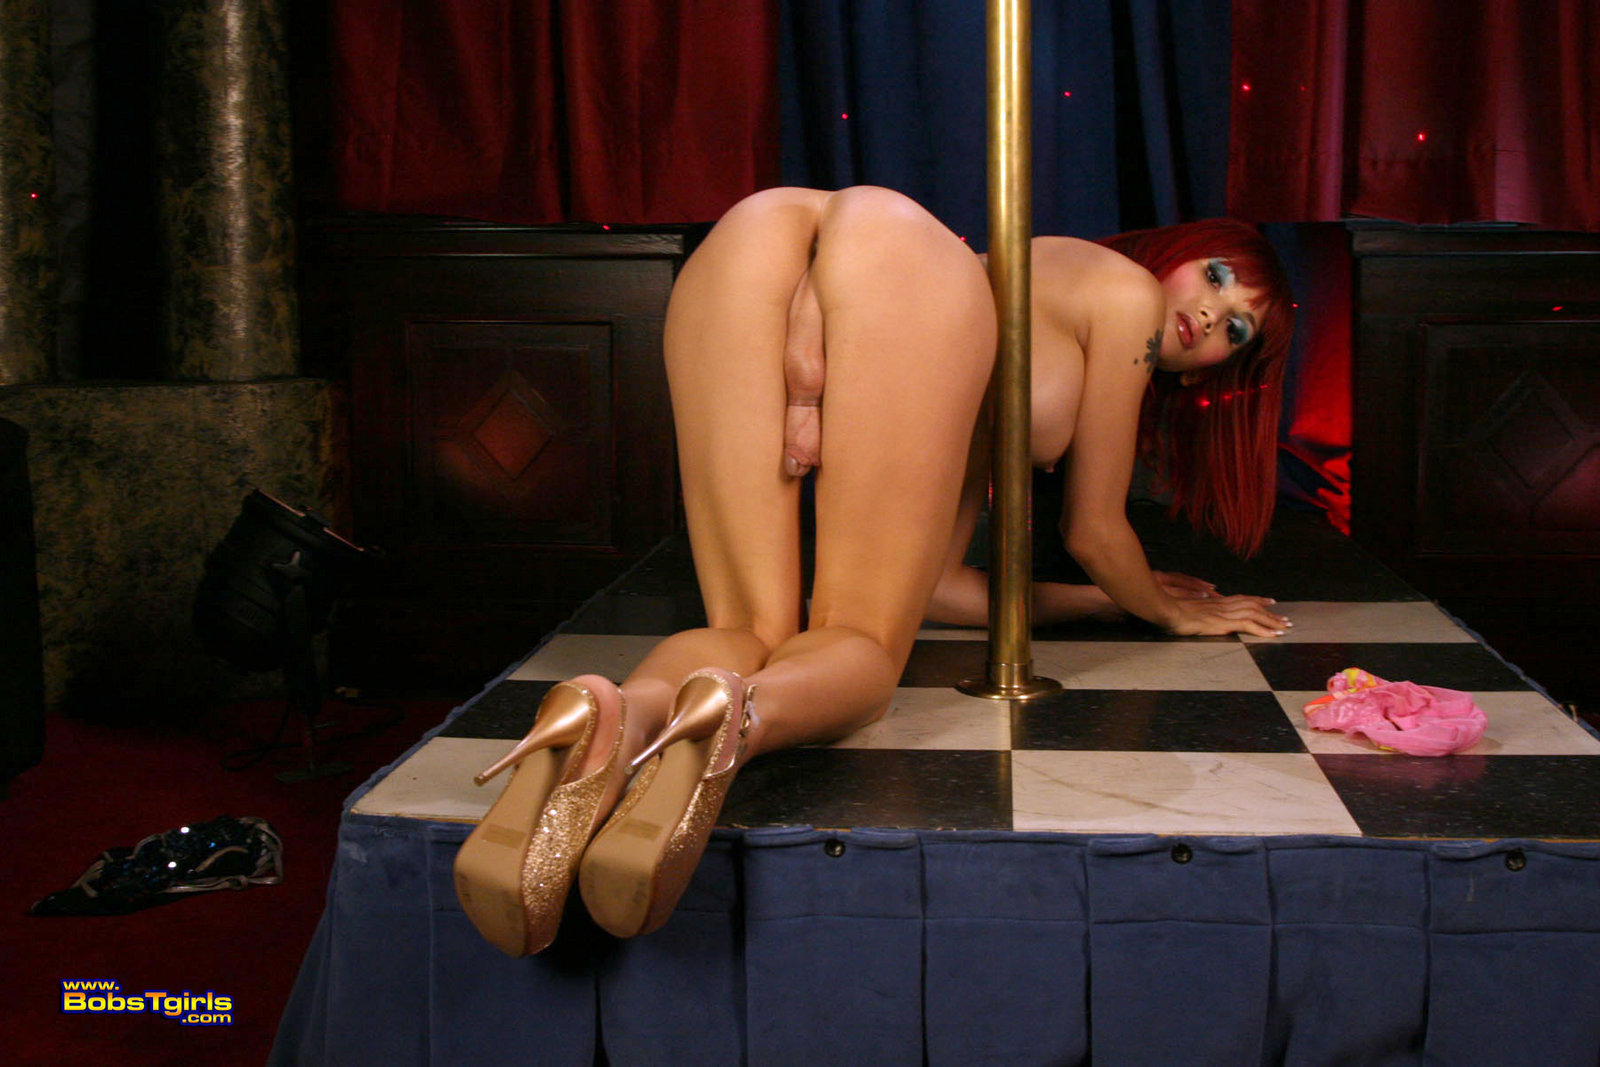 women pole dancing naked